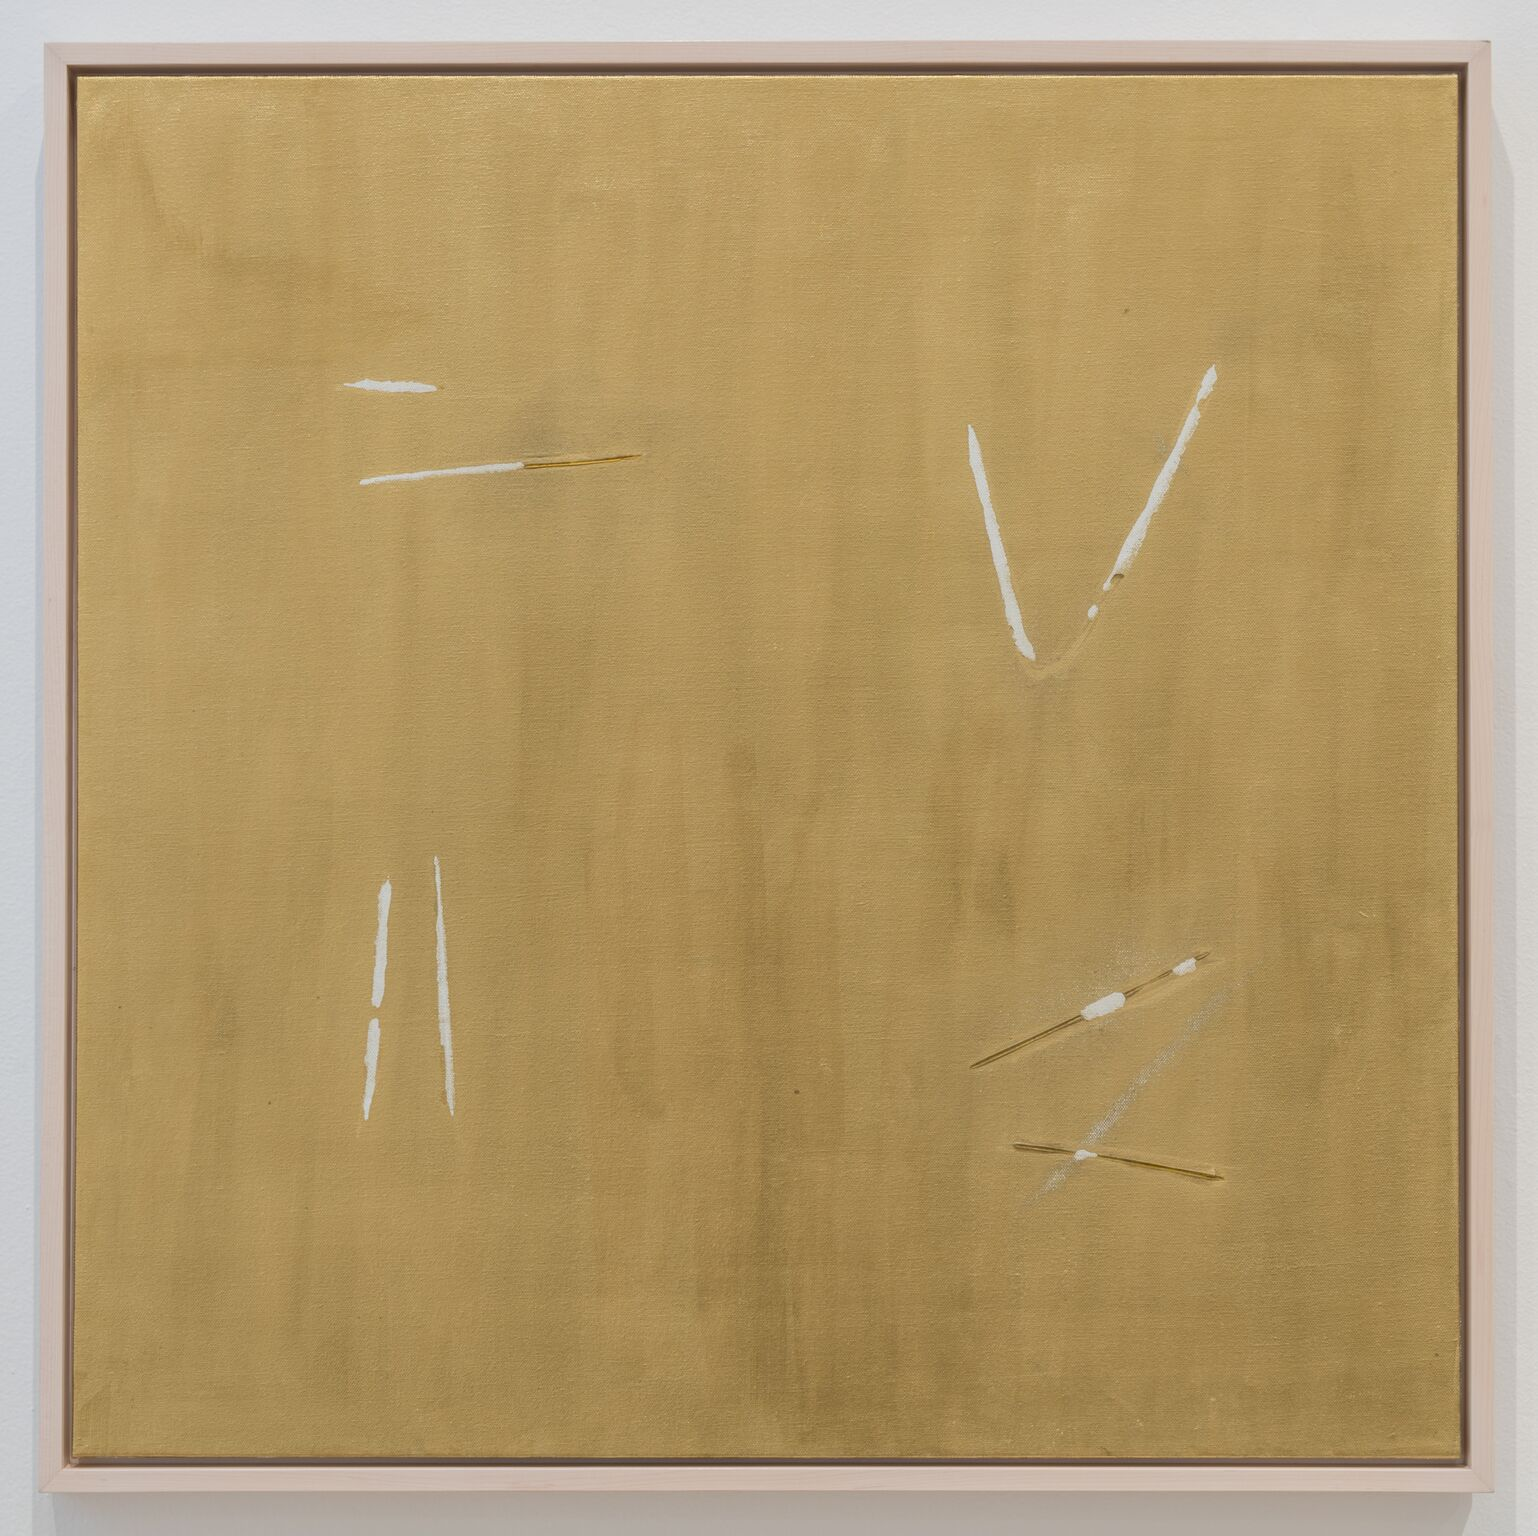 Alejandro Diaz  Repeal (Hangers) , 2017 14K gold pigment and acrylic on canvas 30 x 30 in (76.2 x 76.2 cm)